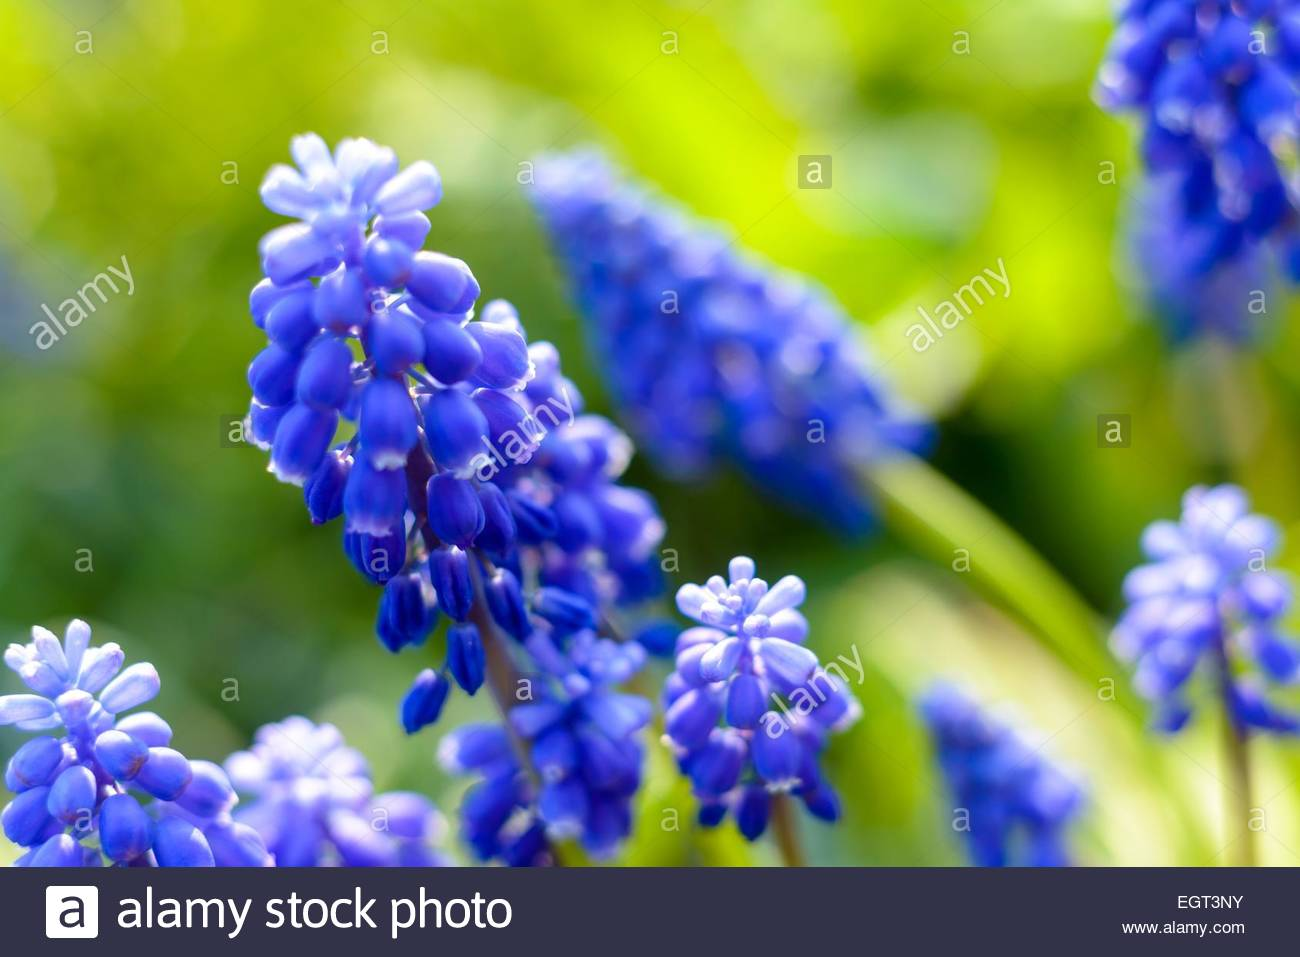 Small blue flowers at spring stock photo royalty free image small blue flowers at spring dhlflorist Choice Image